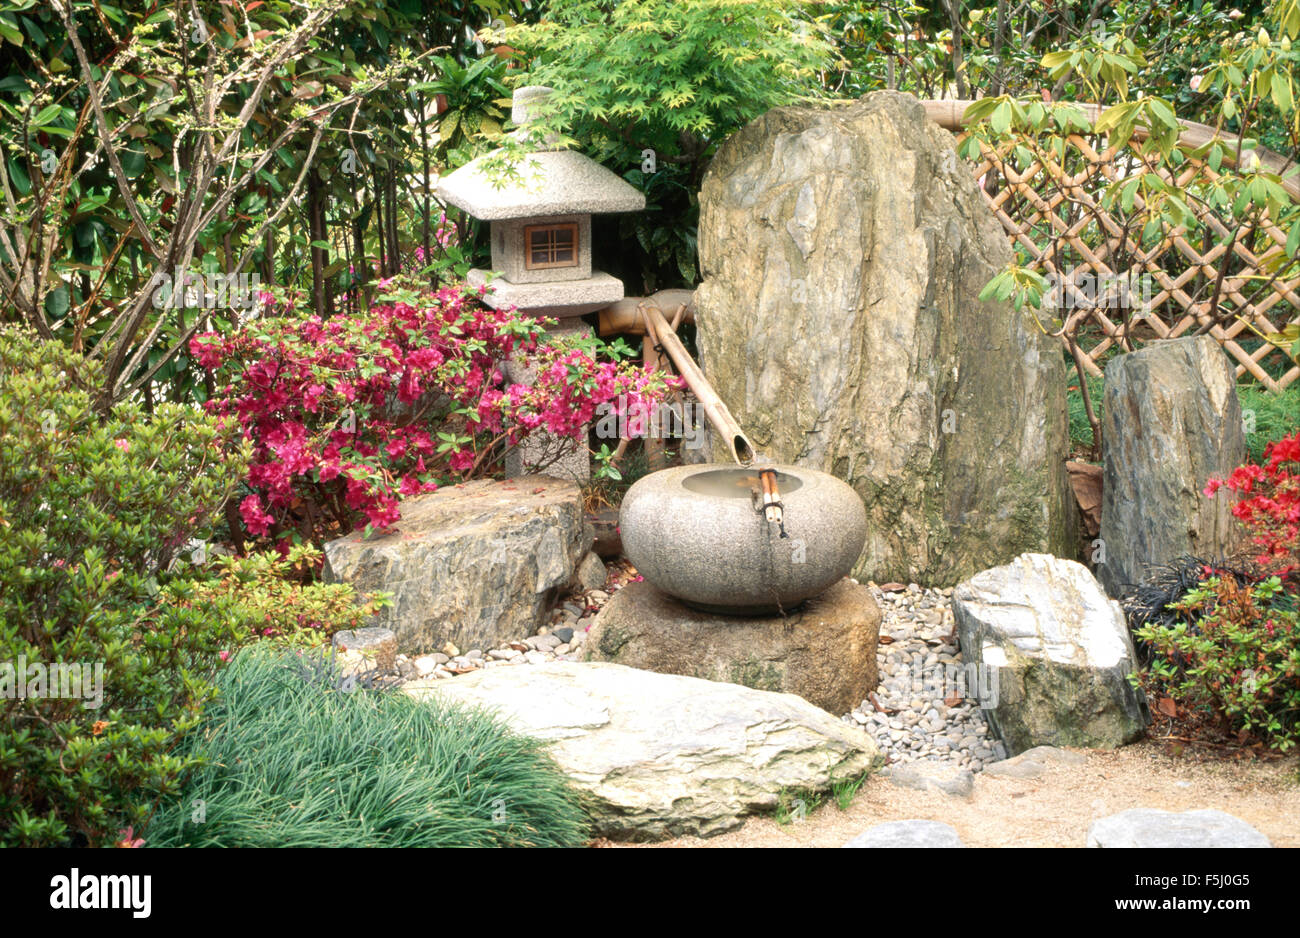 Pink Azalea And Stone Lantern Beside A Japanese Style Water Feature Of Bamboo Pipe Circular Pot